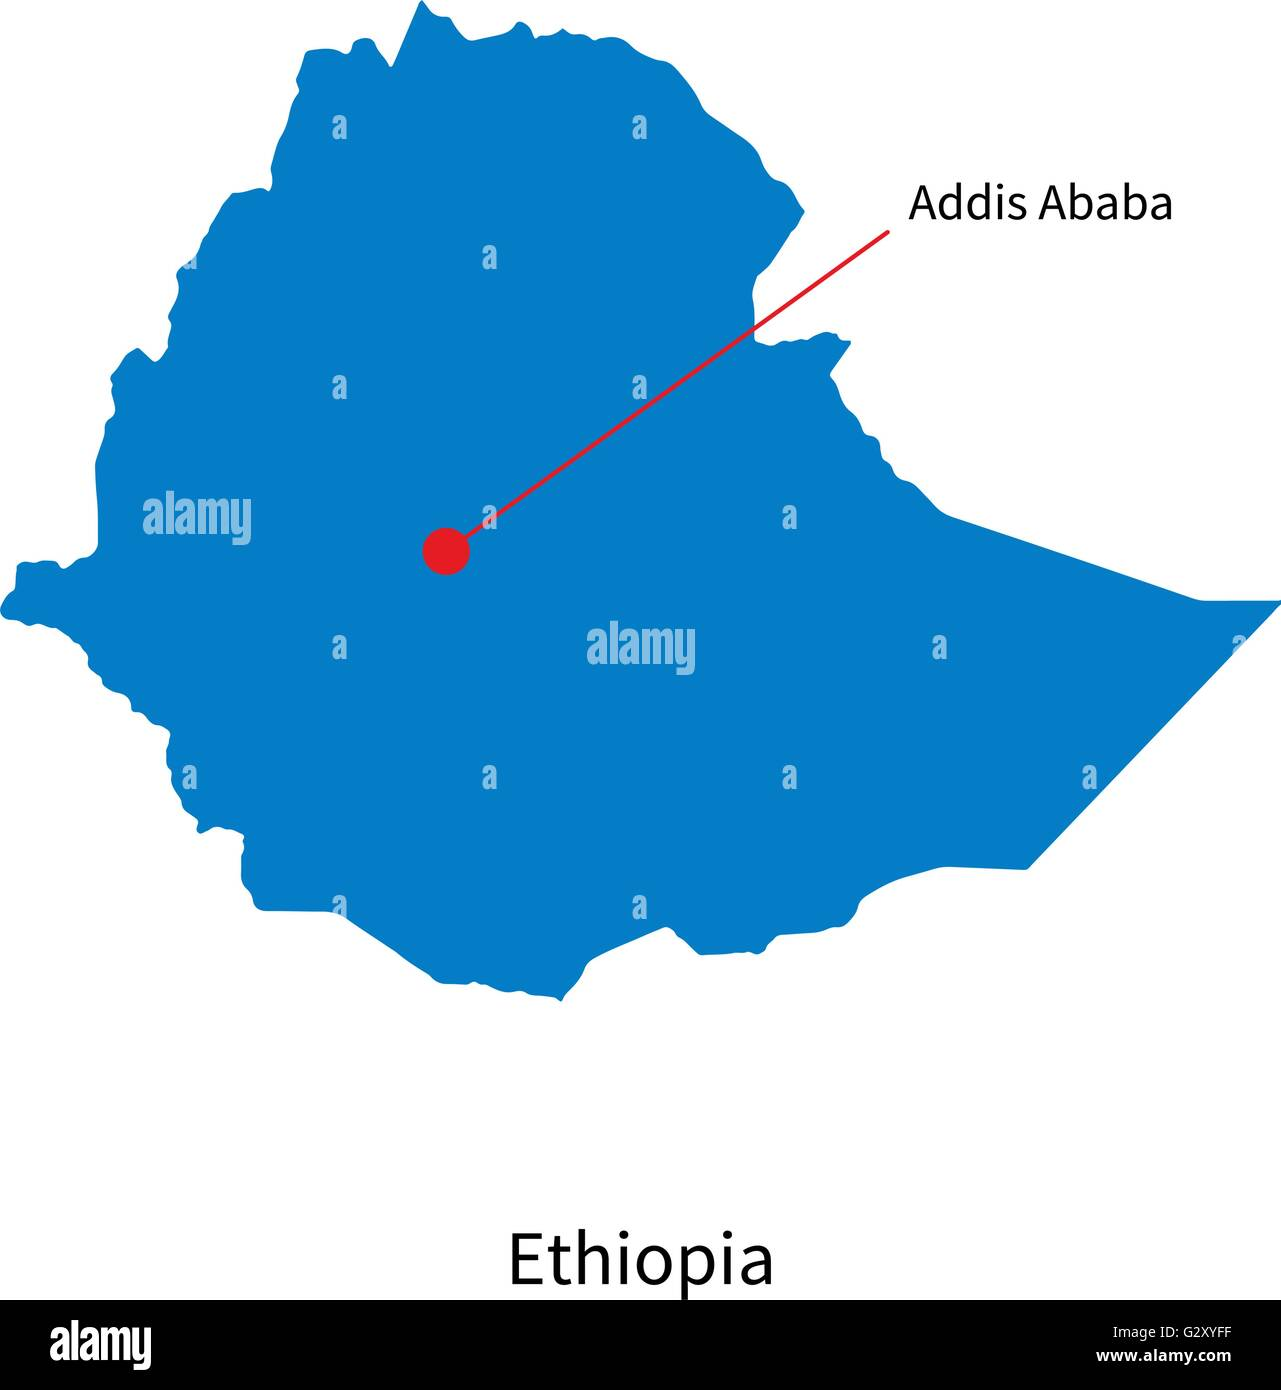 Detailed vector map of Ethiopia and capital city Addis Ababa ... on capital of qatar map, capital of estonia map, capital of benin map, capital of suriname map, capital of bosnia map, capital of latvia map, capital of azerbaijan map, capital of ghana map, capital of burma map, capital of malawi map, capital of bermuda map, capital of united arab emirates map, capital of luxembourg map, capital of montenegro map, capital of kosovo map, capital of guyana map, capital of dominica map, capital of the united kingdom map, capital of gambia map, capital of macedonia map,